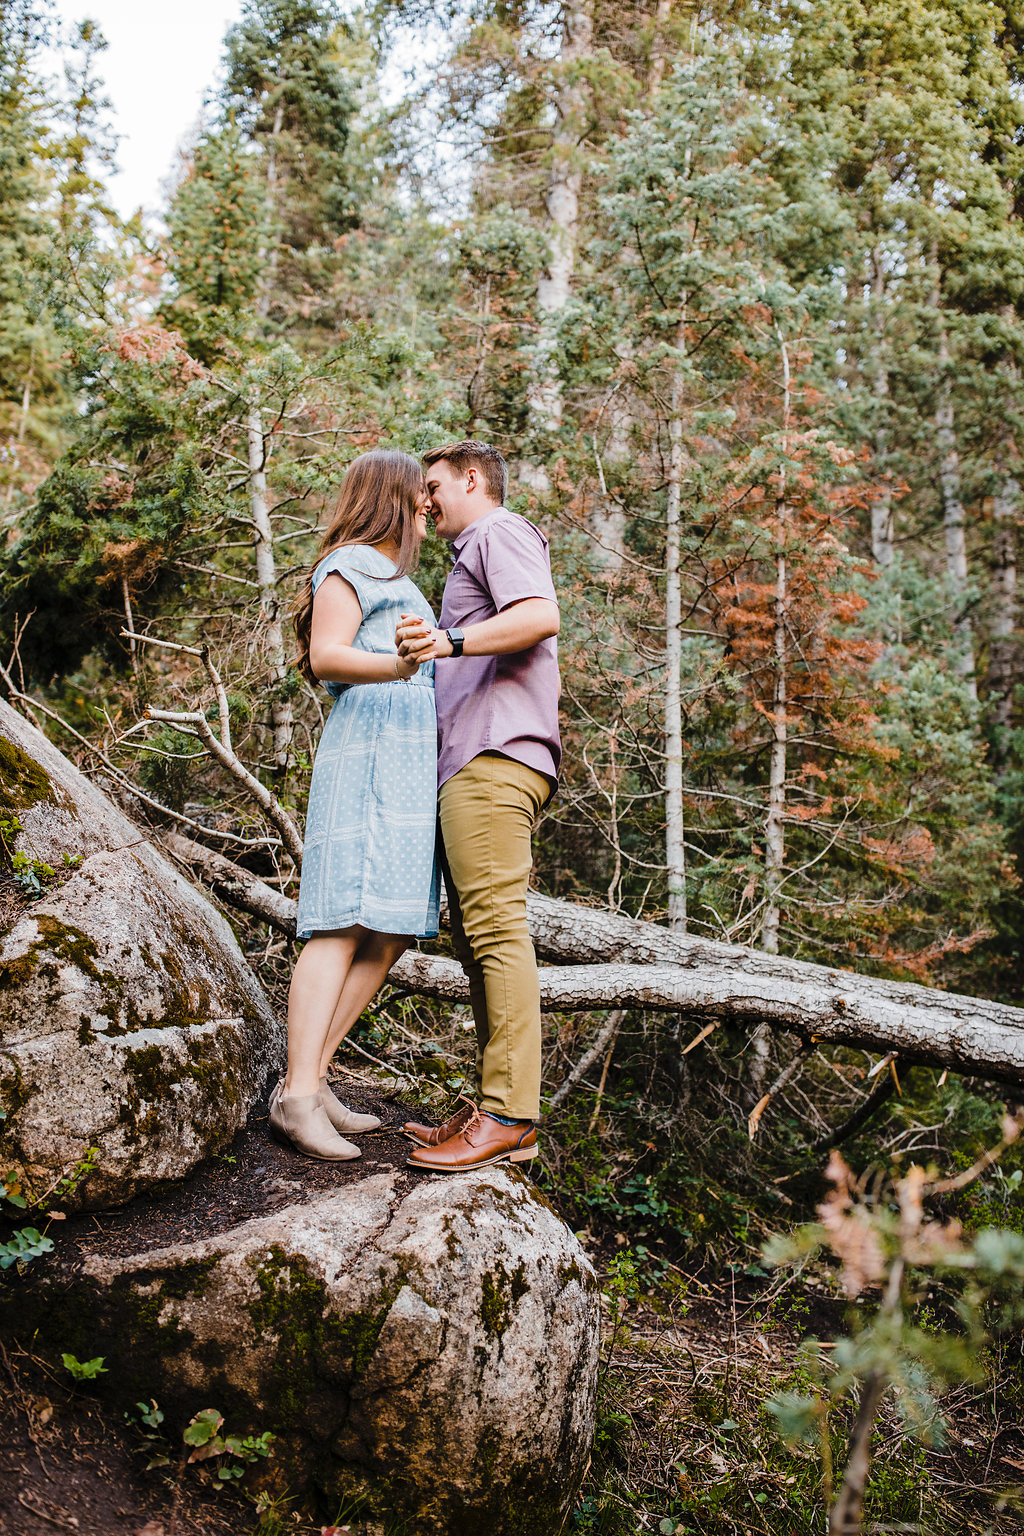 engagement photography in a forest near a lake northern utah cache valley engagement photographer calli richards